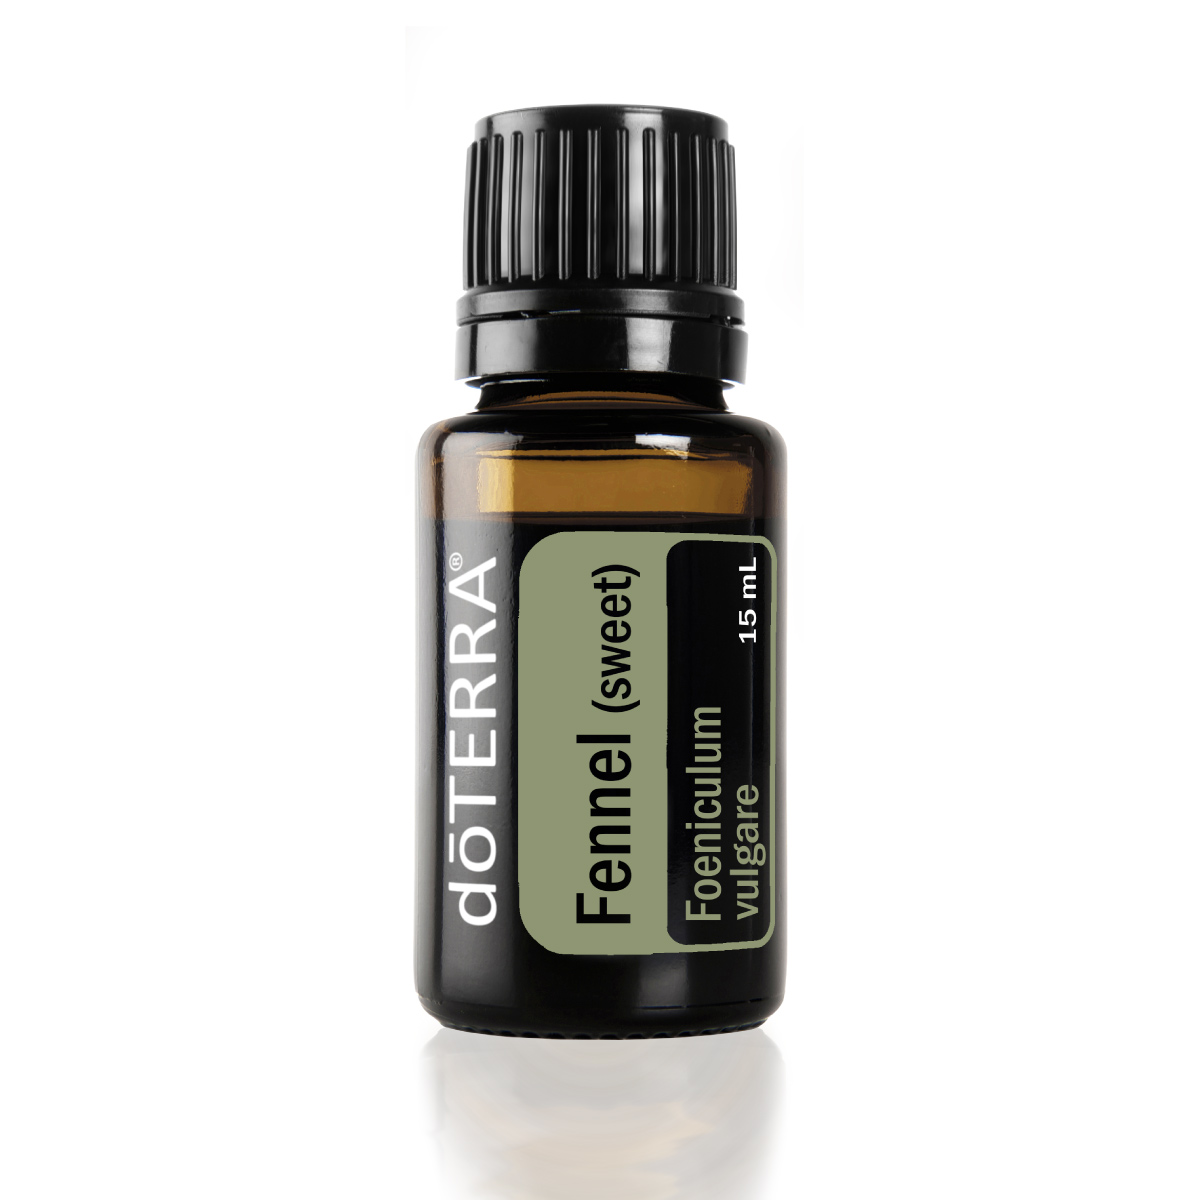 doTERRA Fennel oil bottle. What are the uses and benefits of Fennel oil? Fennel essential oil is renowned for its digestive benefits when taken internally.